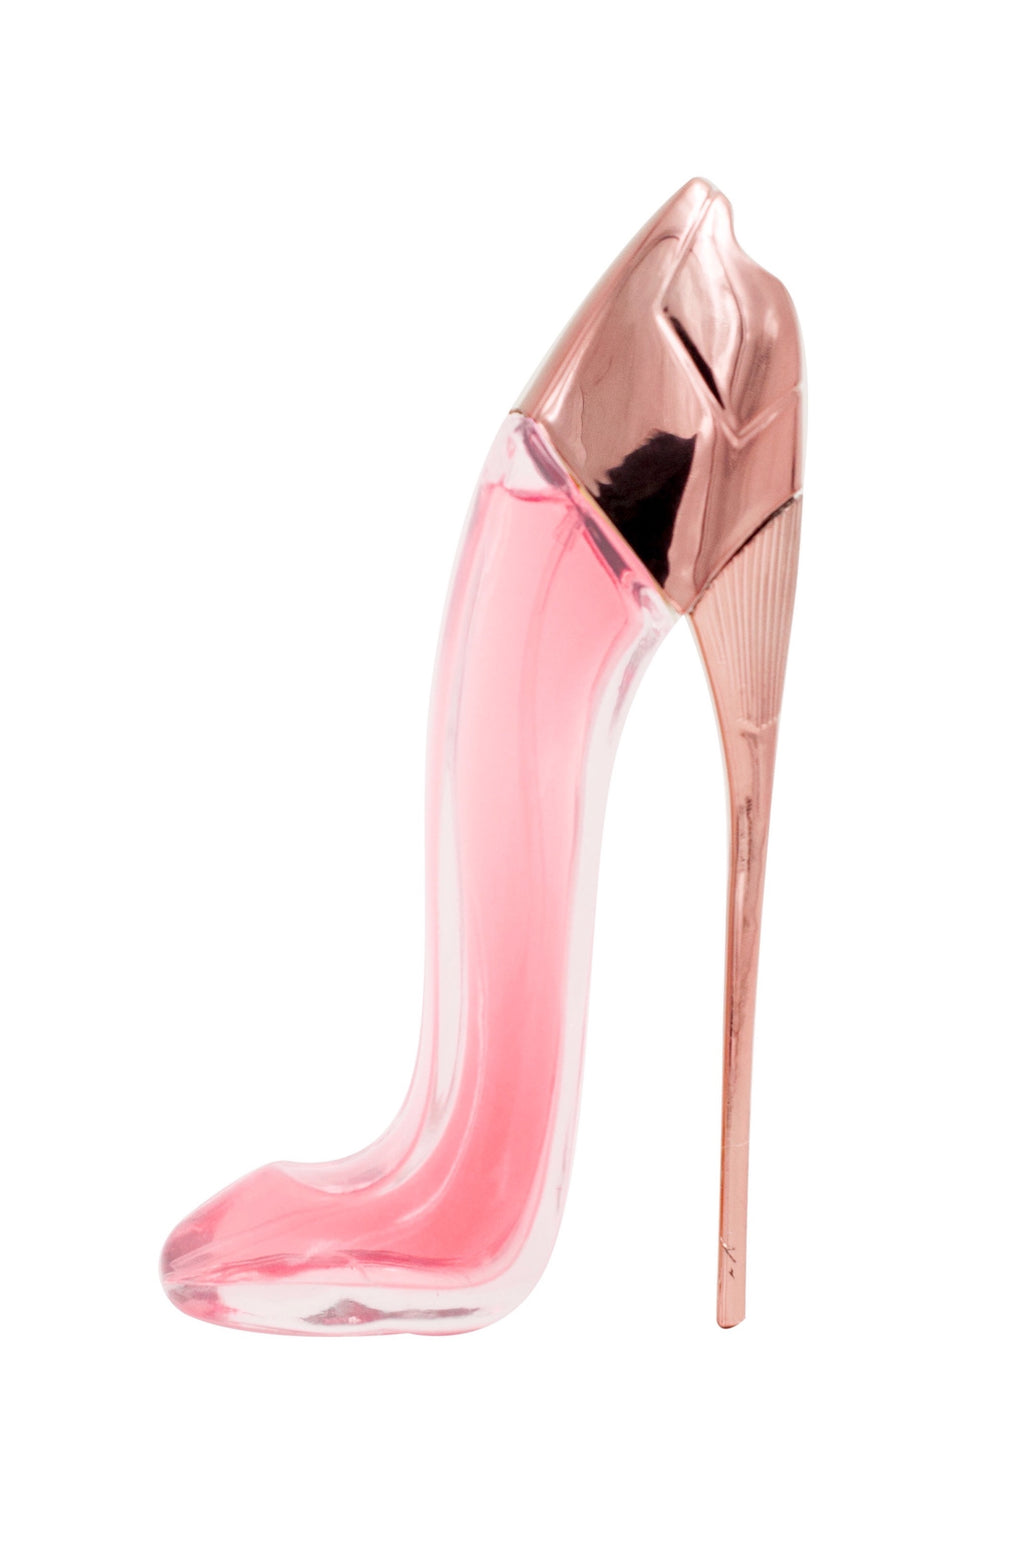 Princess High Heel Perfume Bottle